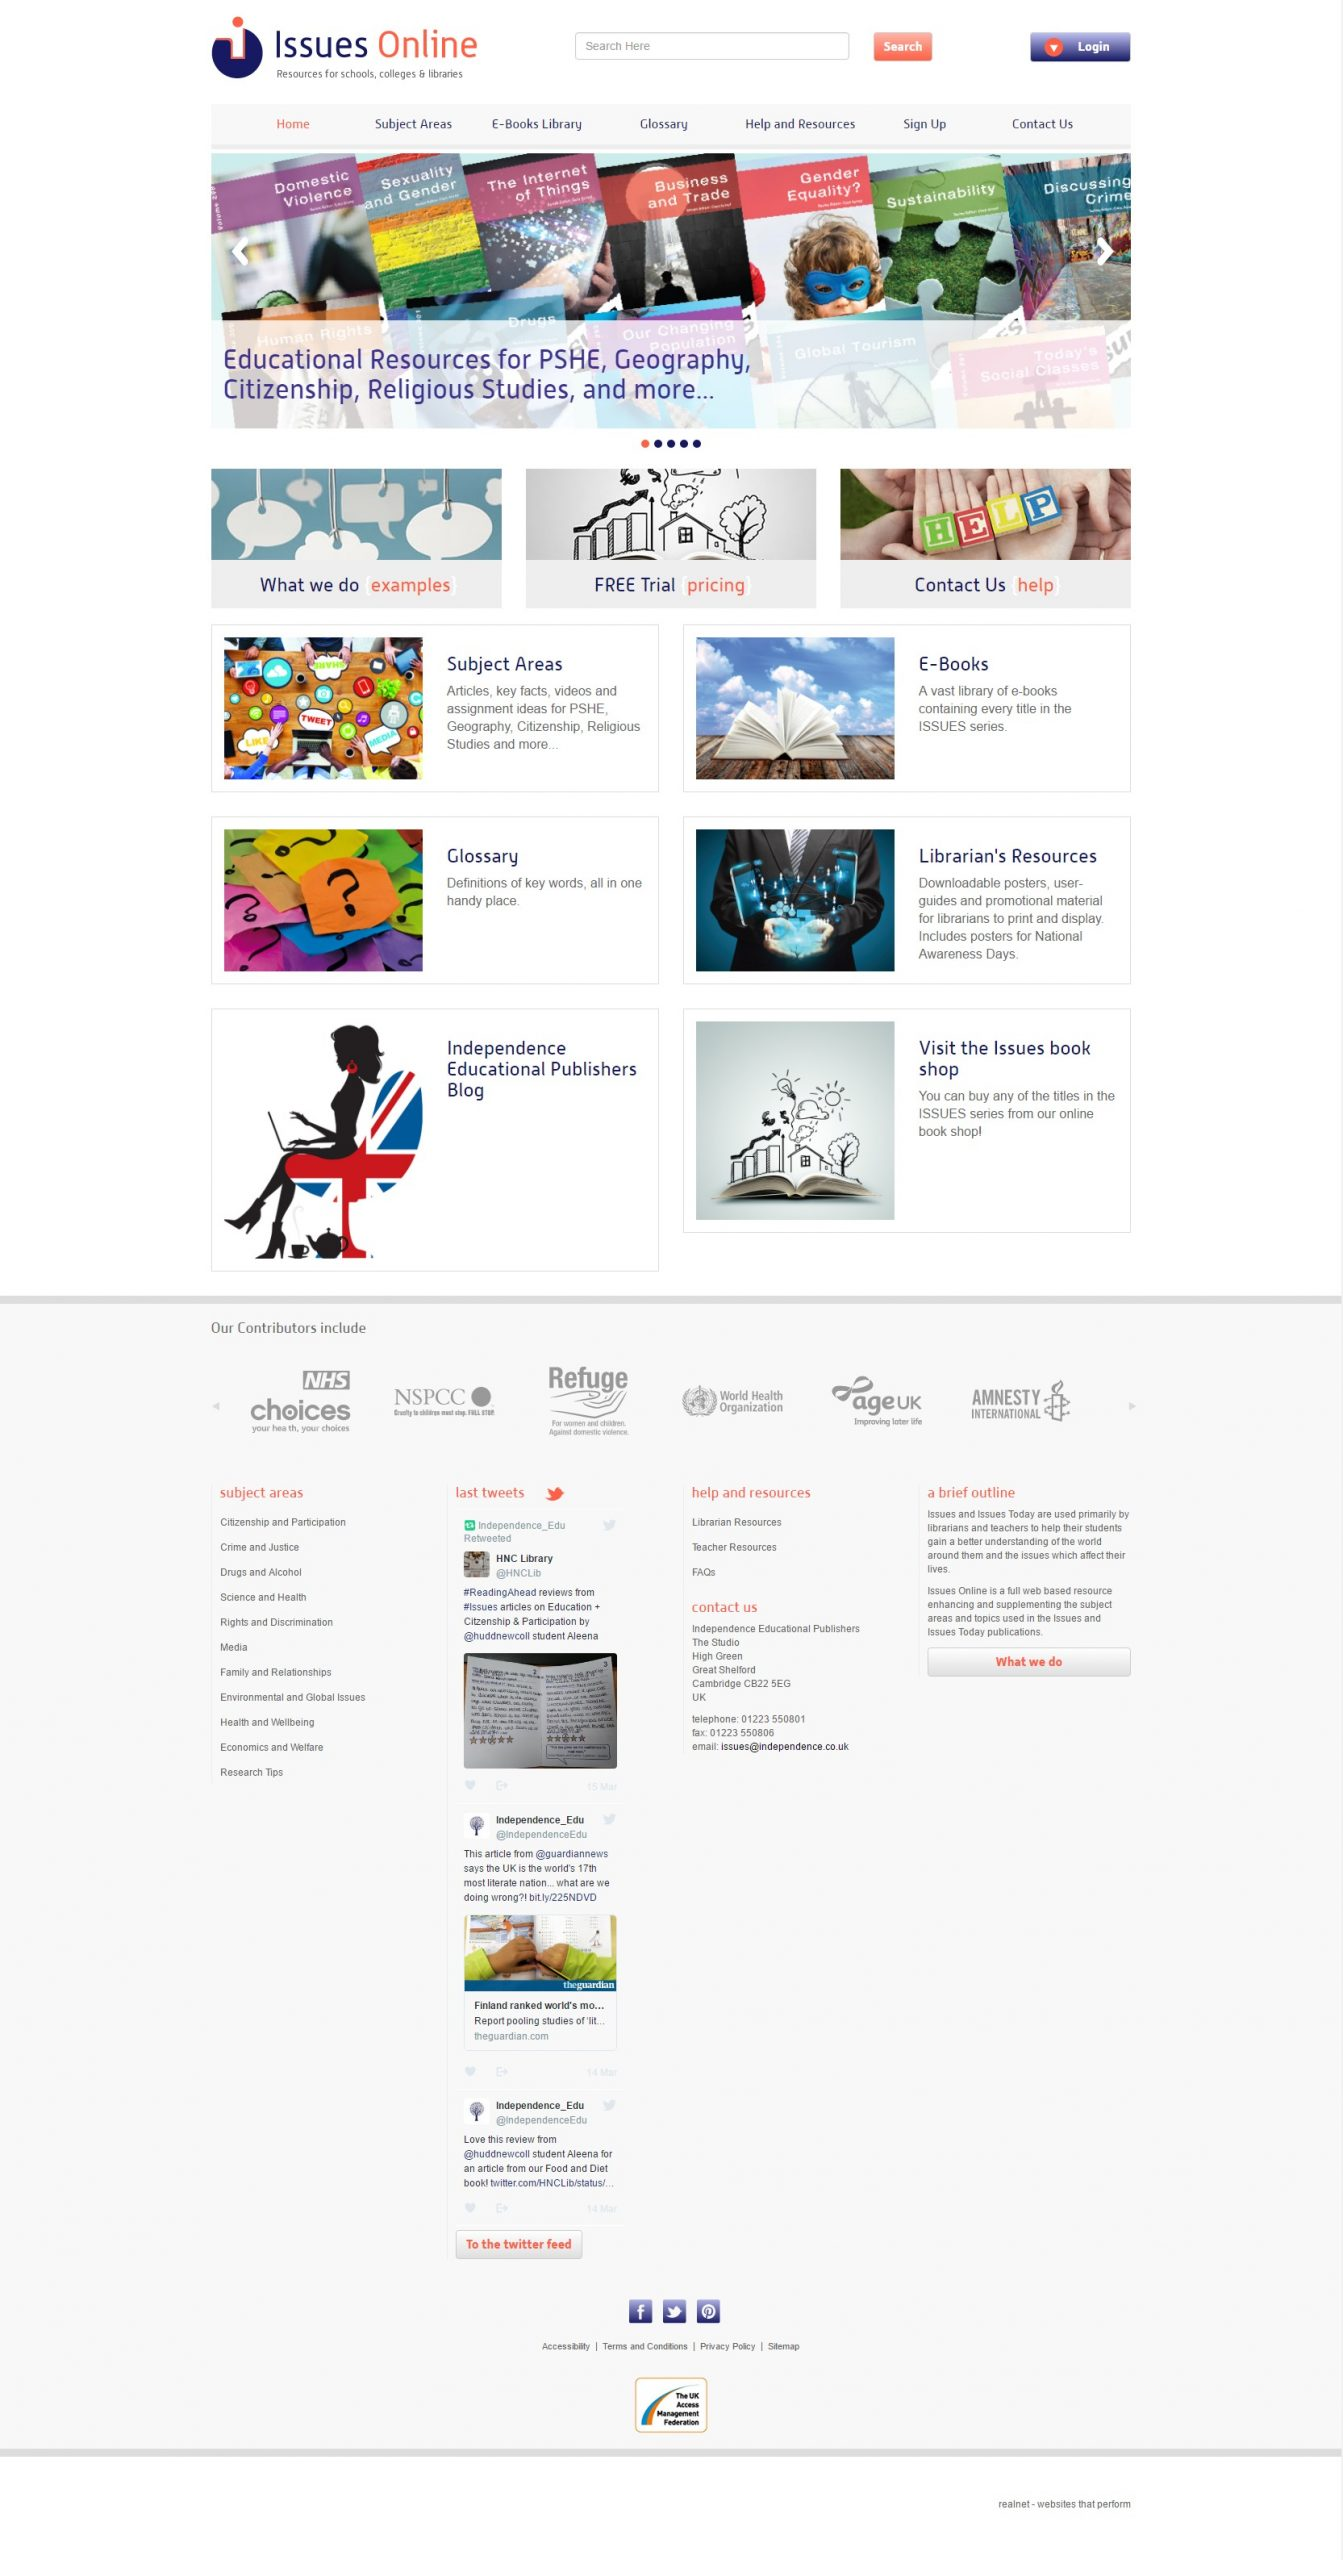 Issues Online website home page design